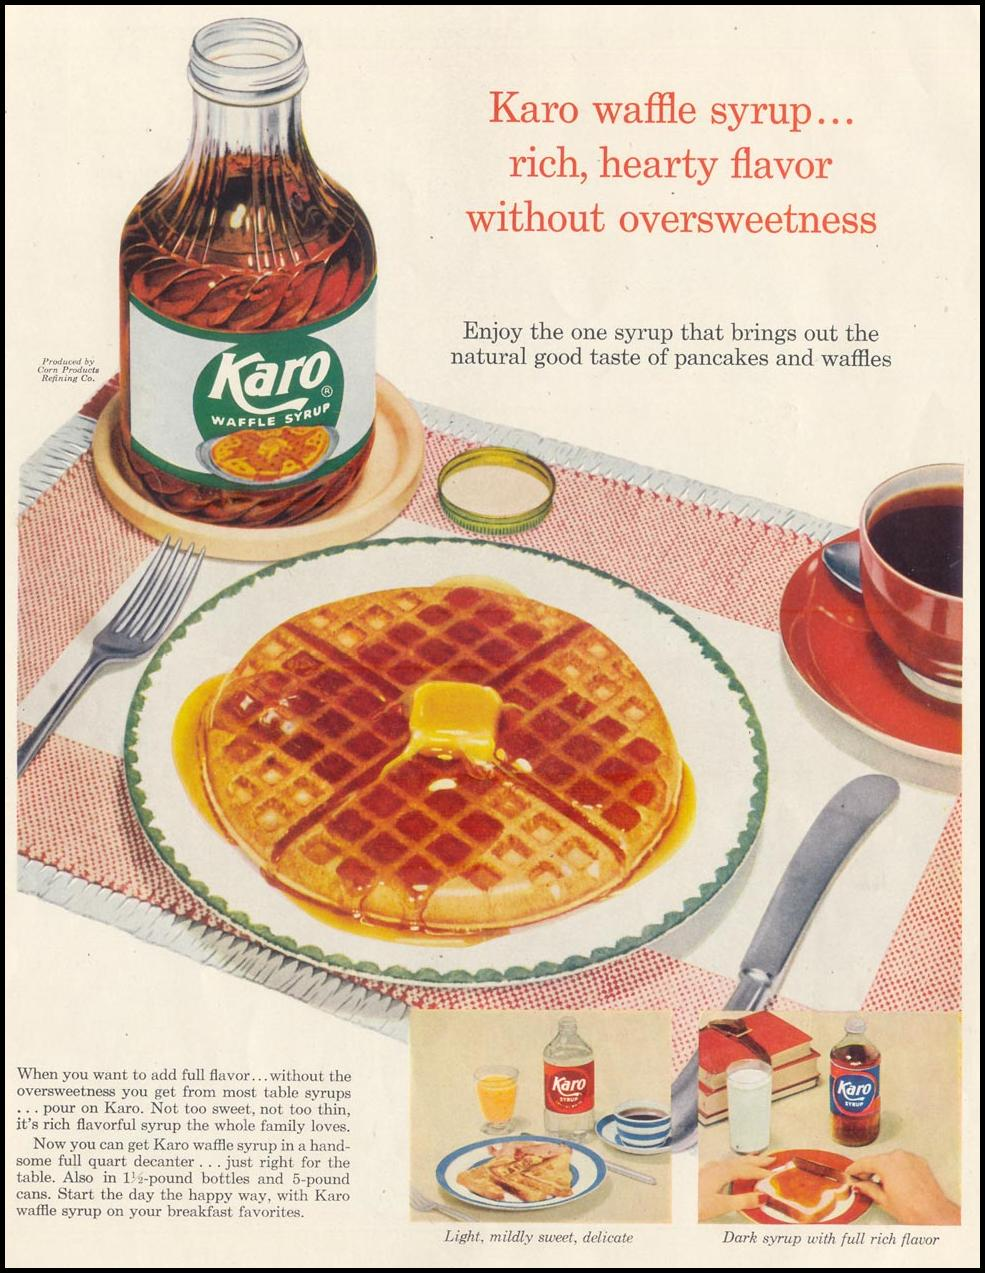 KARO WAFFLE SYRUP SATURDAY EVENING POST 02/05/1955 INSIDE FRONT